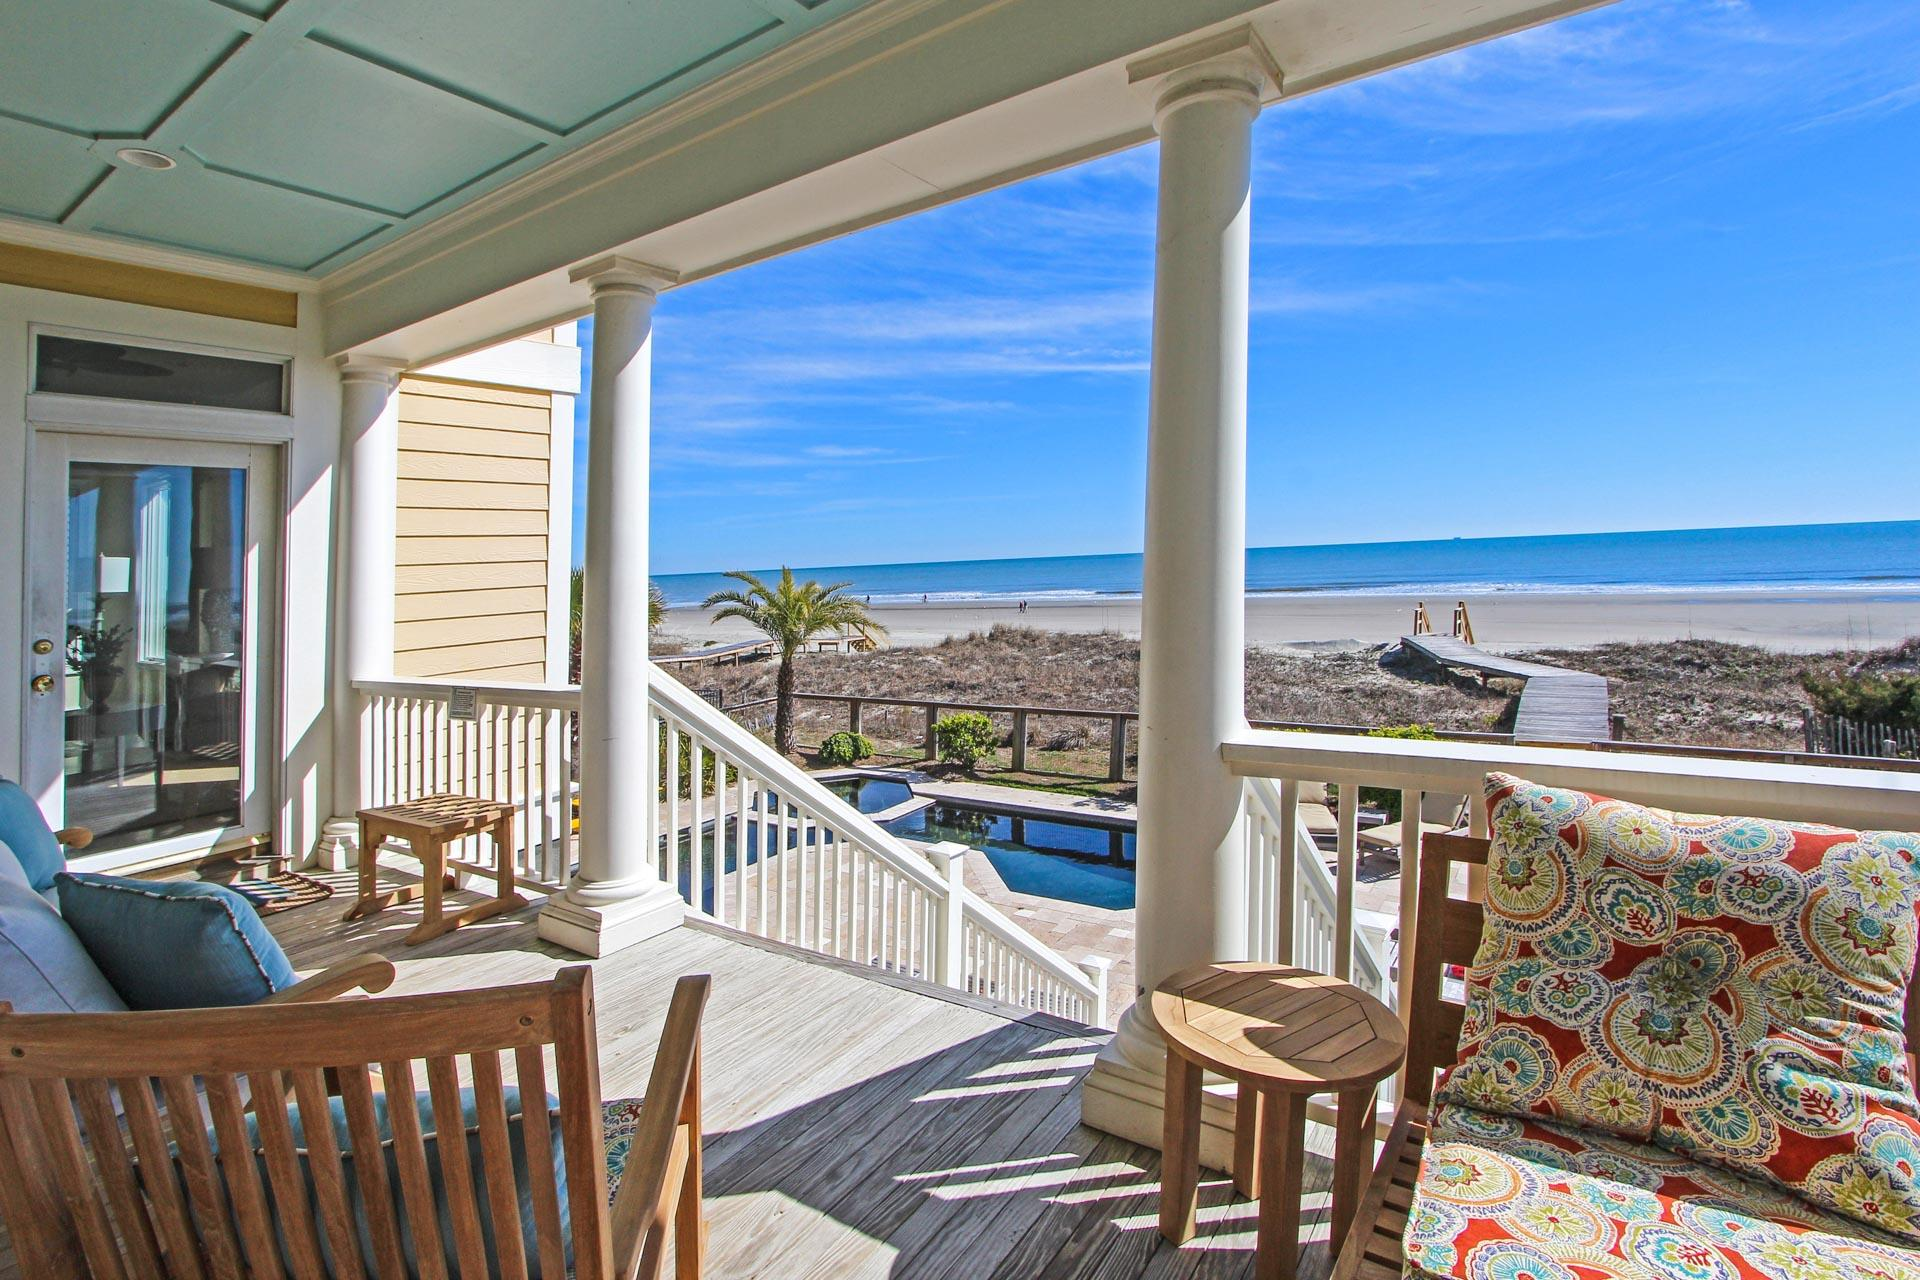 Home for sale 810 Ocean Boulevard, Isle of Palms, SC